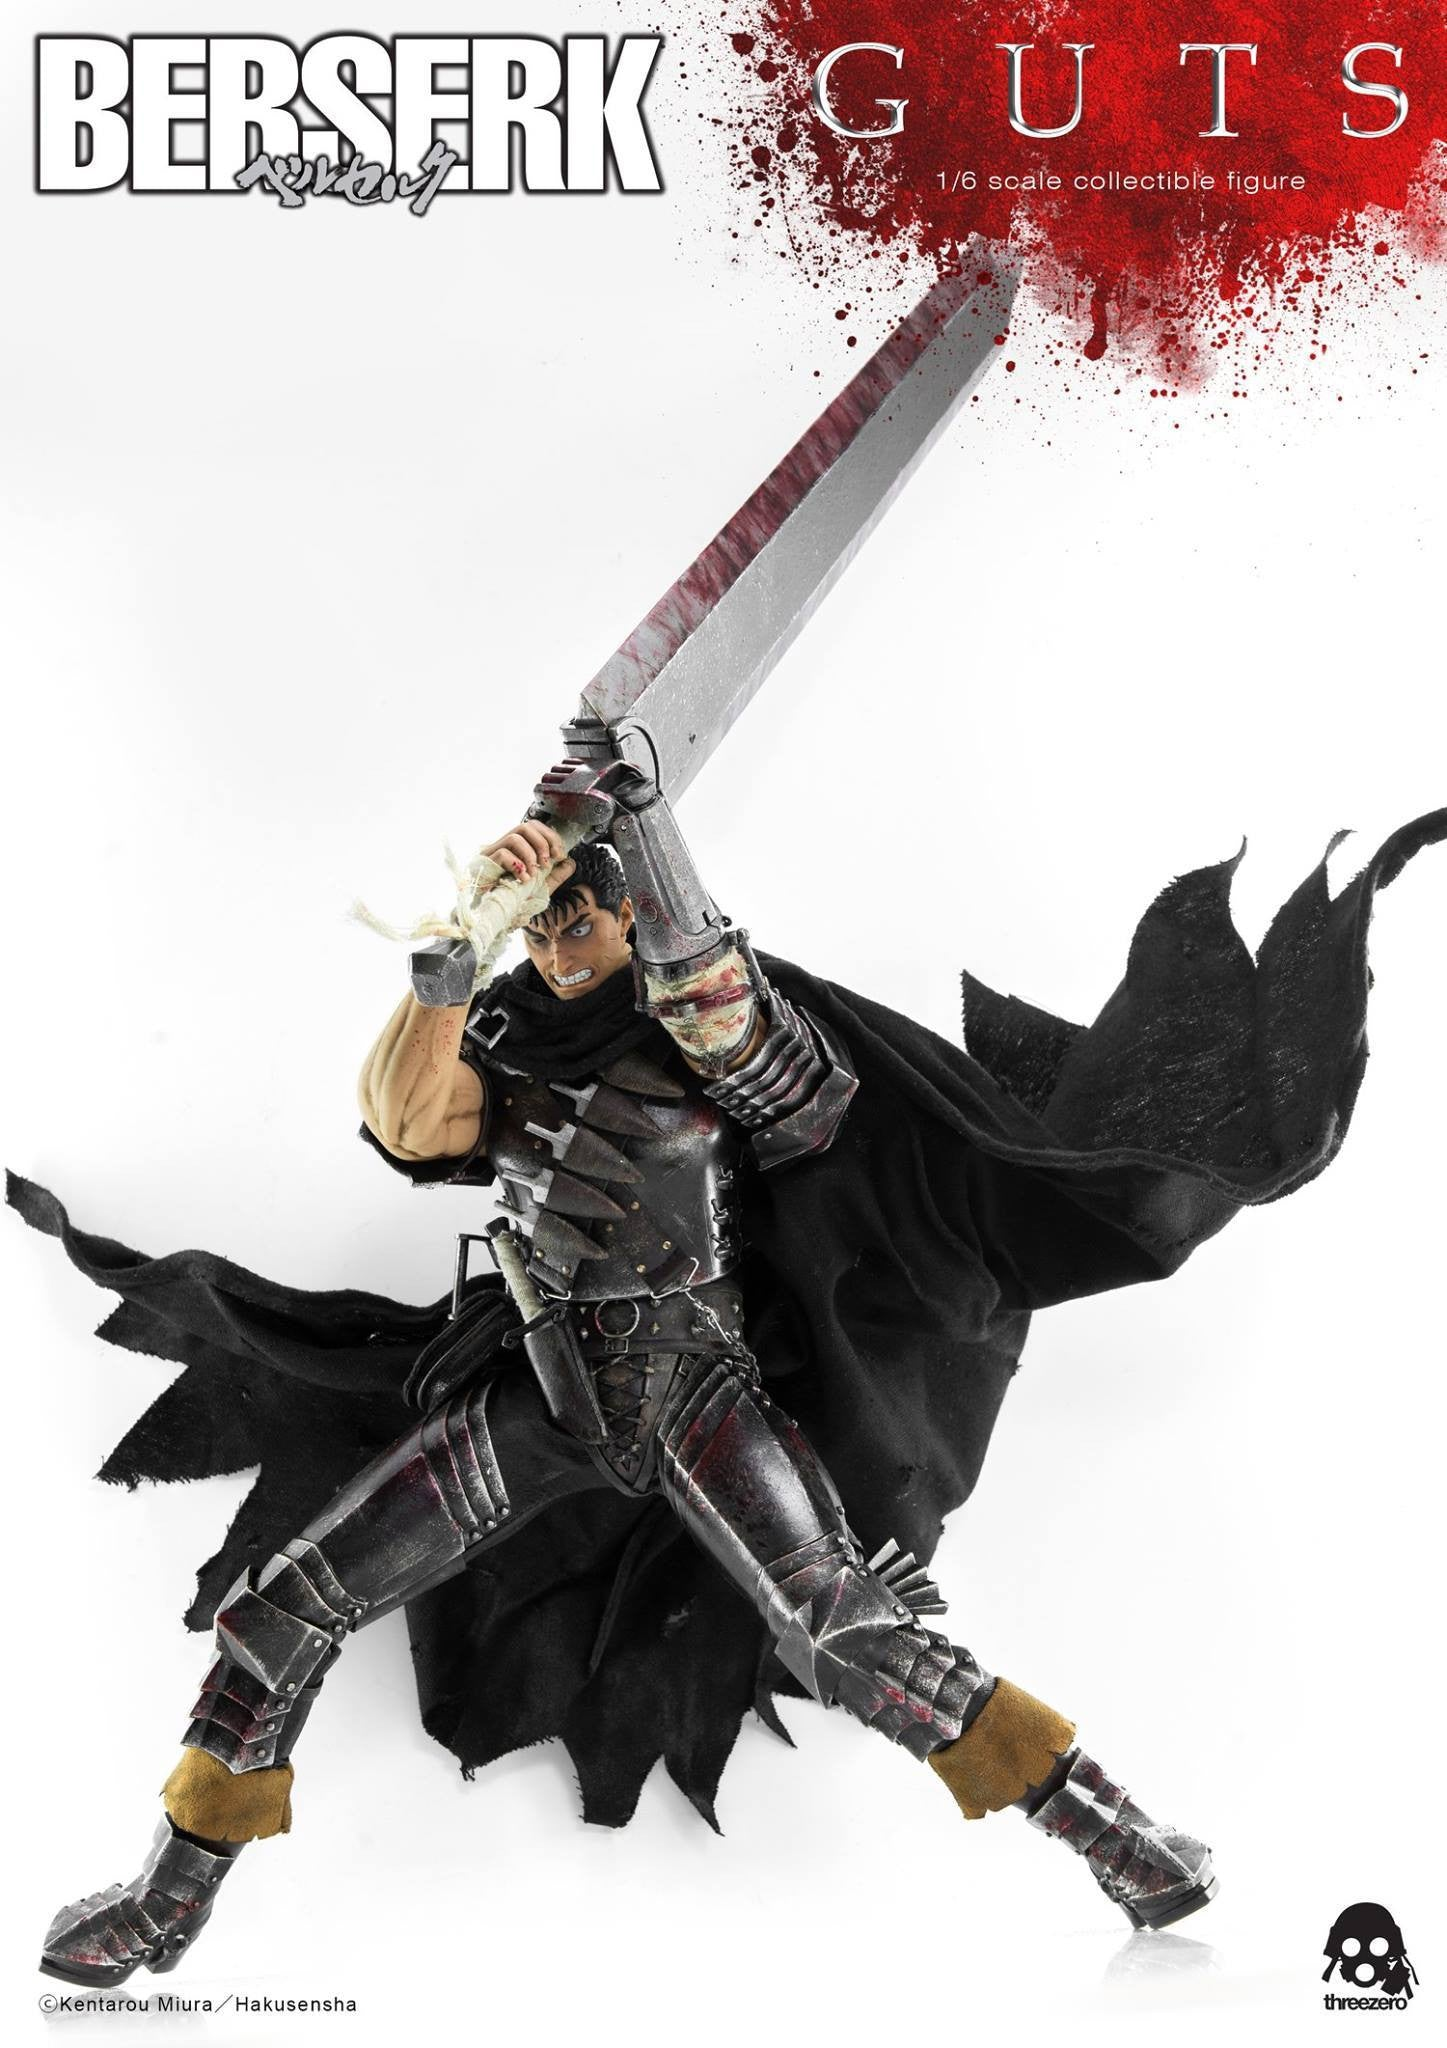 Threezero - Berserk - Guts (Reissue) - Marvelous Toys - 13